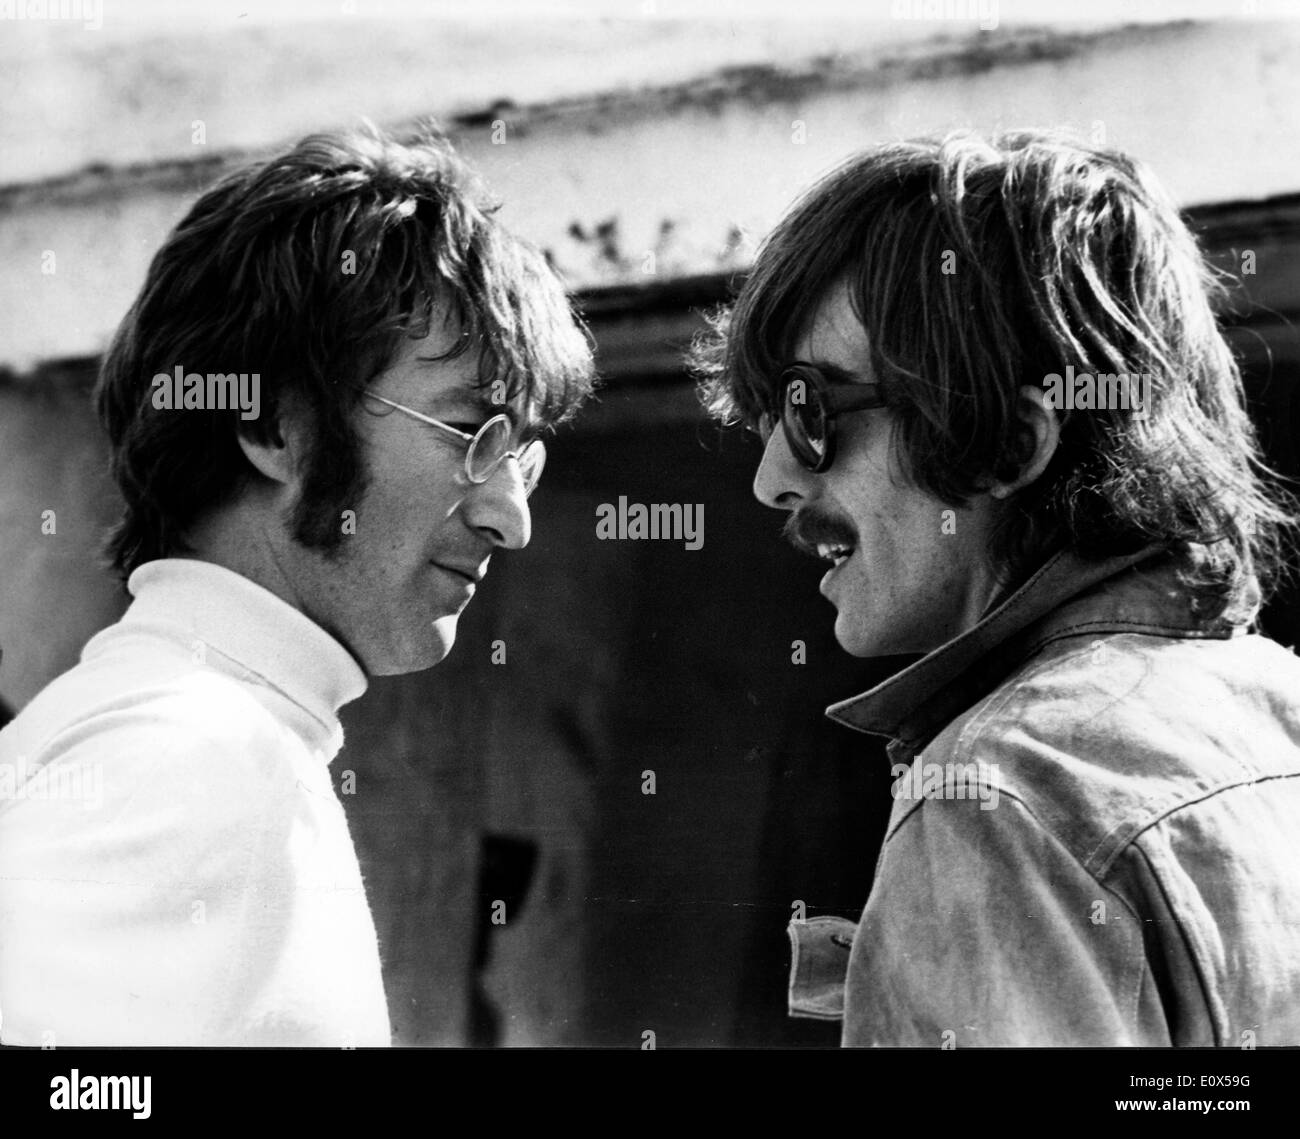 The Beatles John Lennon and George Harrison talking to each other - Stock Image